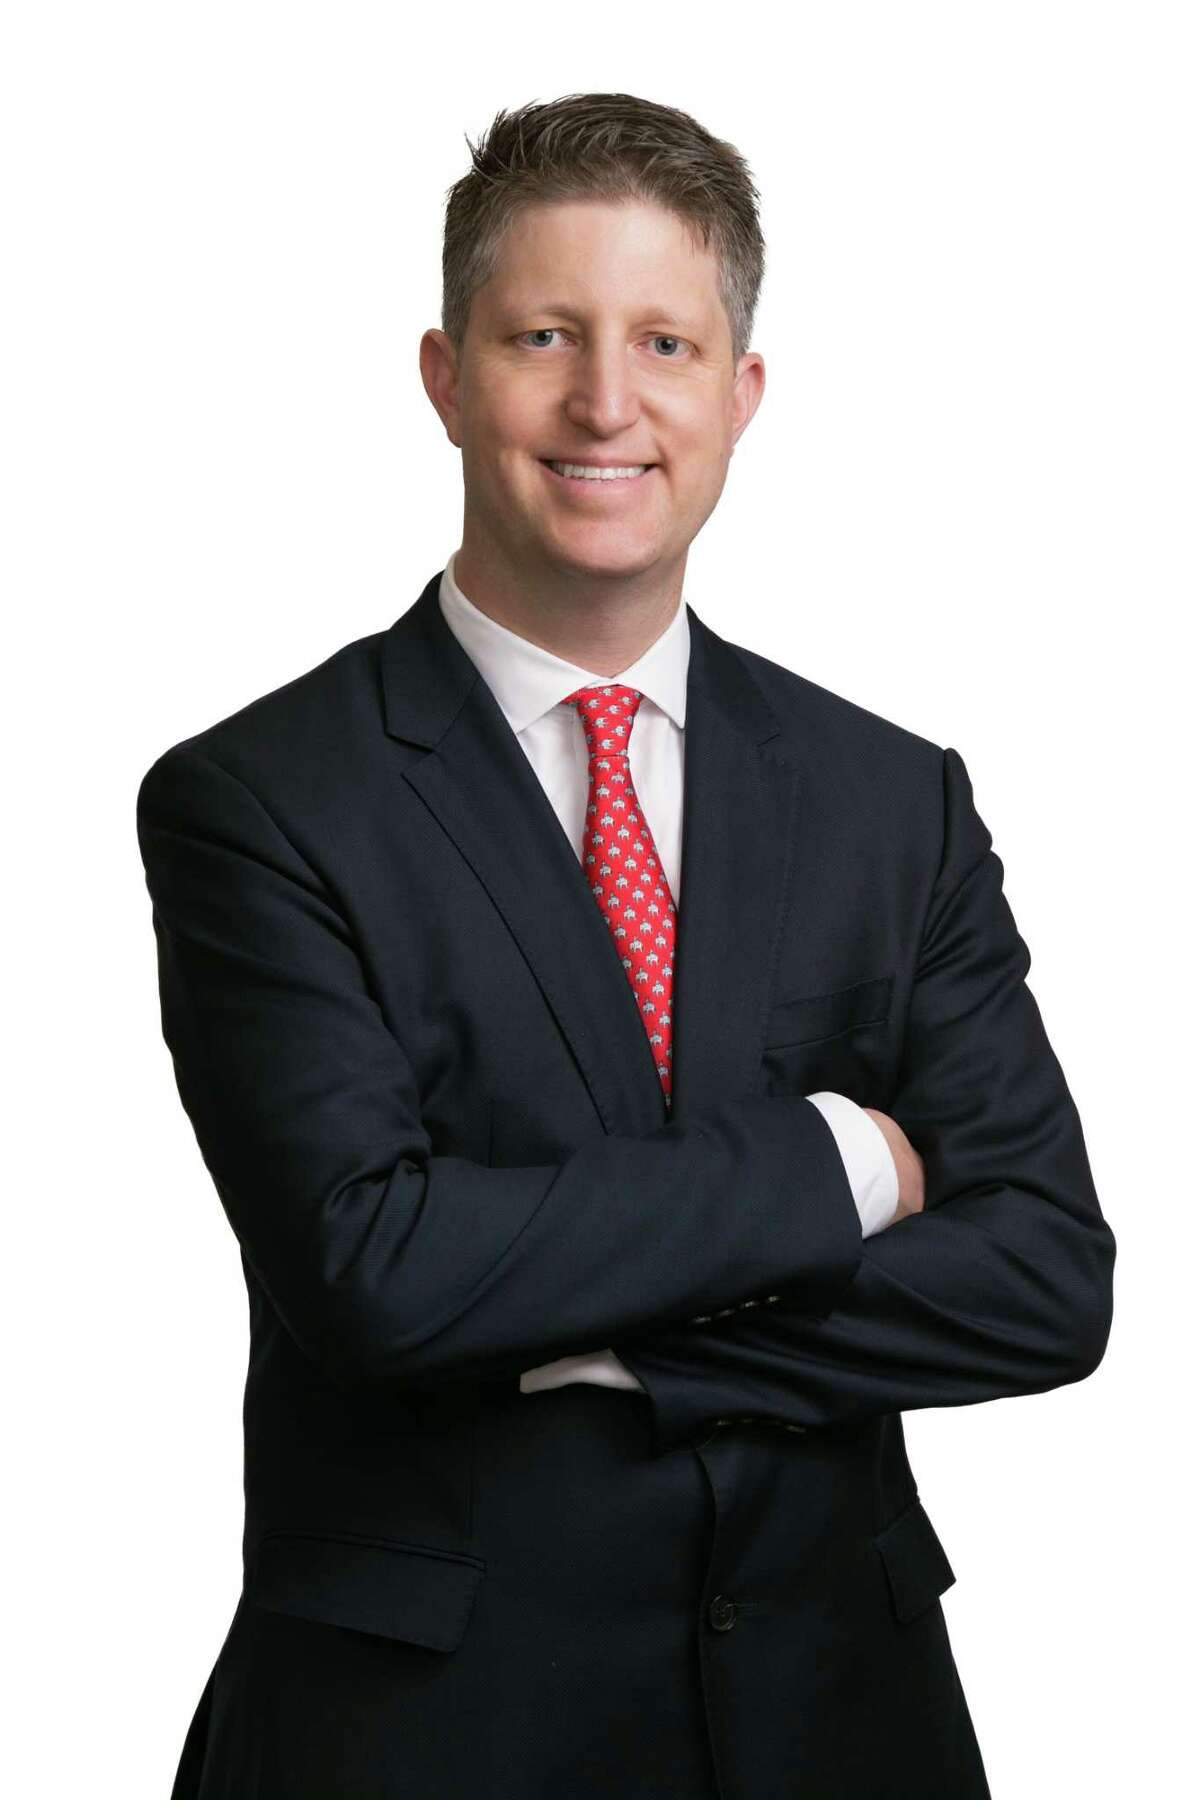 Peter Hays has joined King & Spalding as partner. Hays represents companies and entrepreneurs in upstream, midstream and downstream transactions, including mergers and acquisitions, joint ventures and project development.